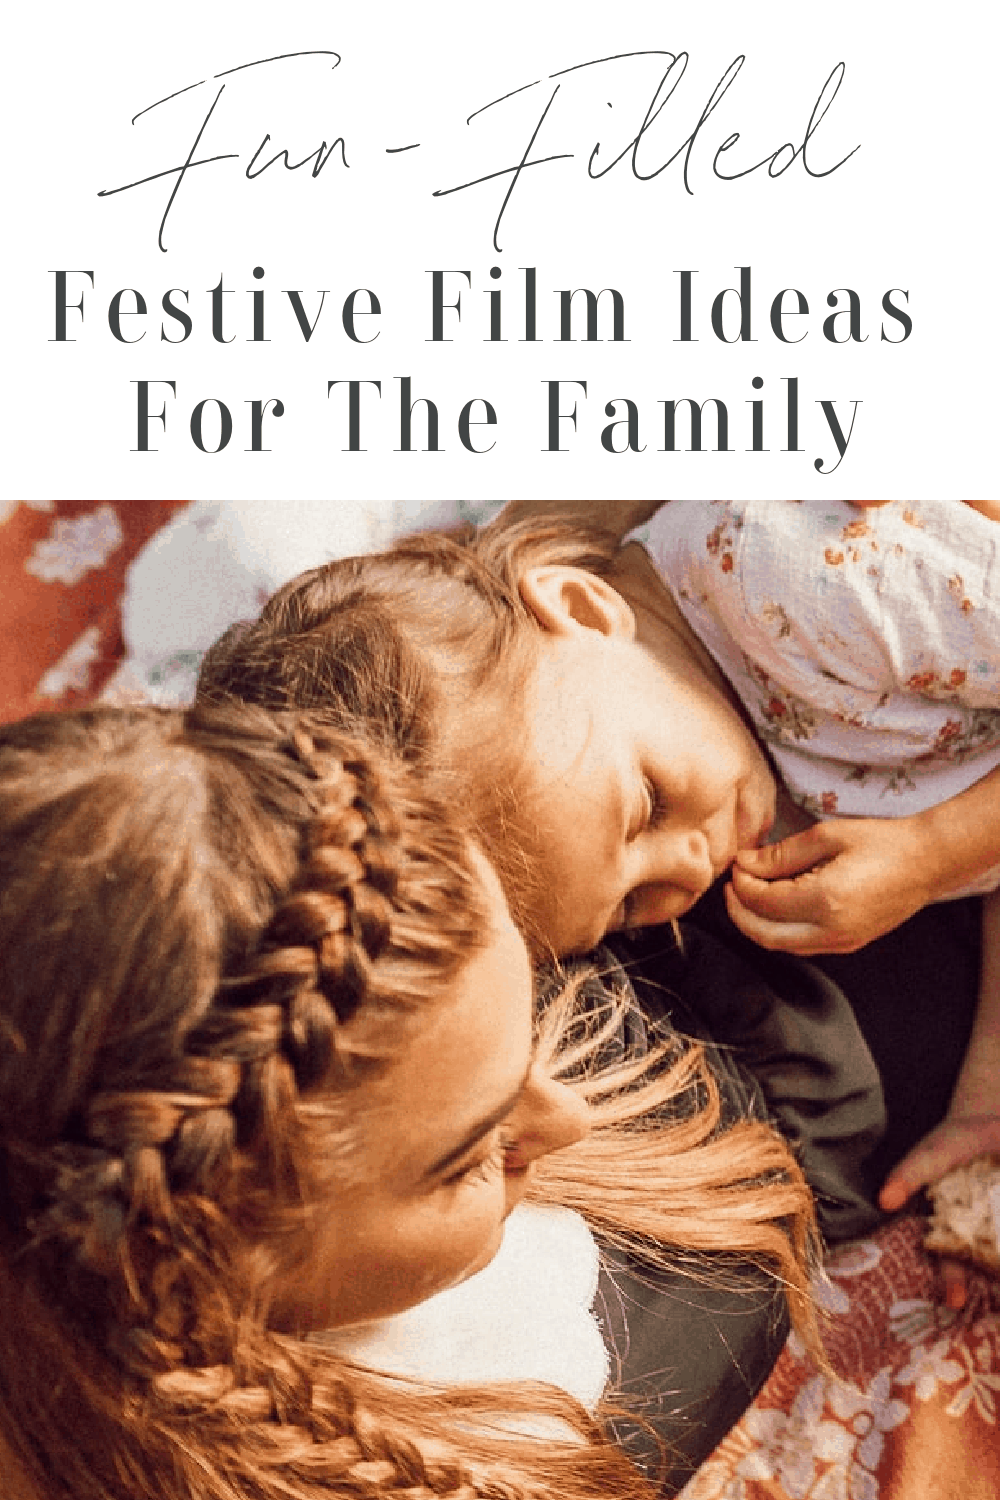 Fun-Filled Festive Film Ideas For The Family